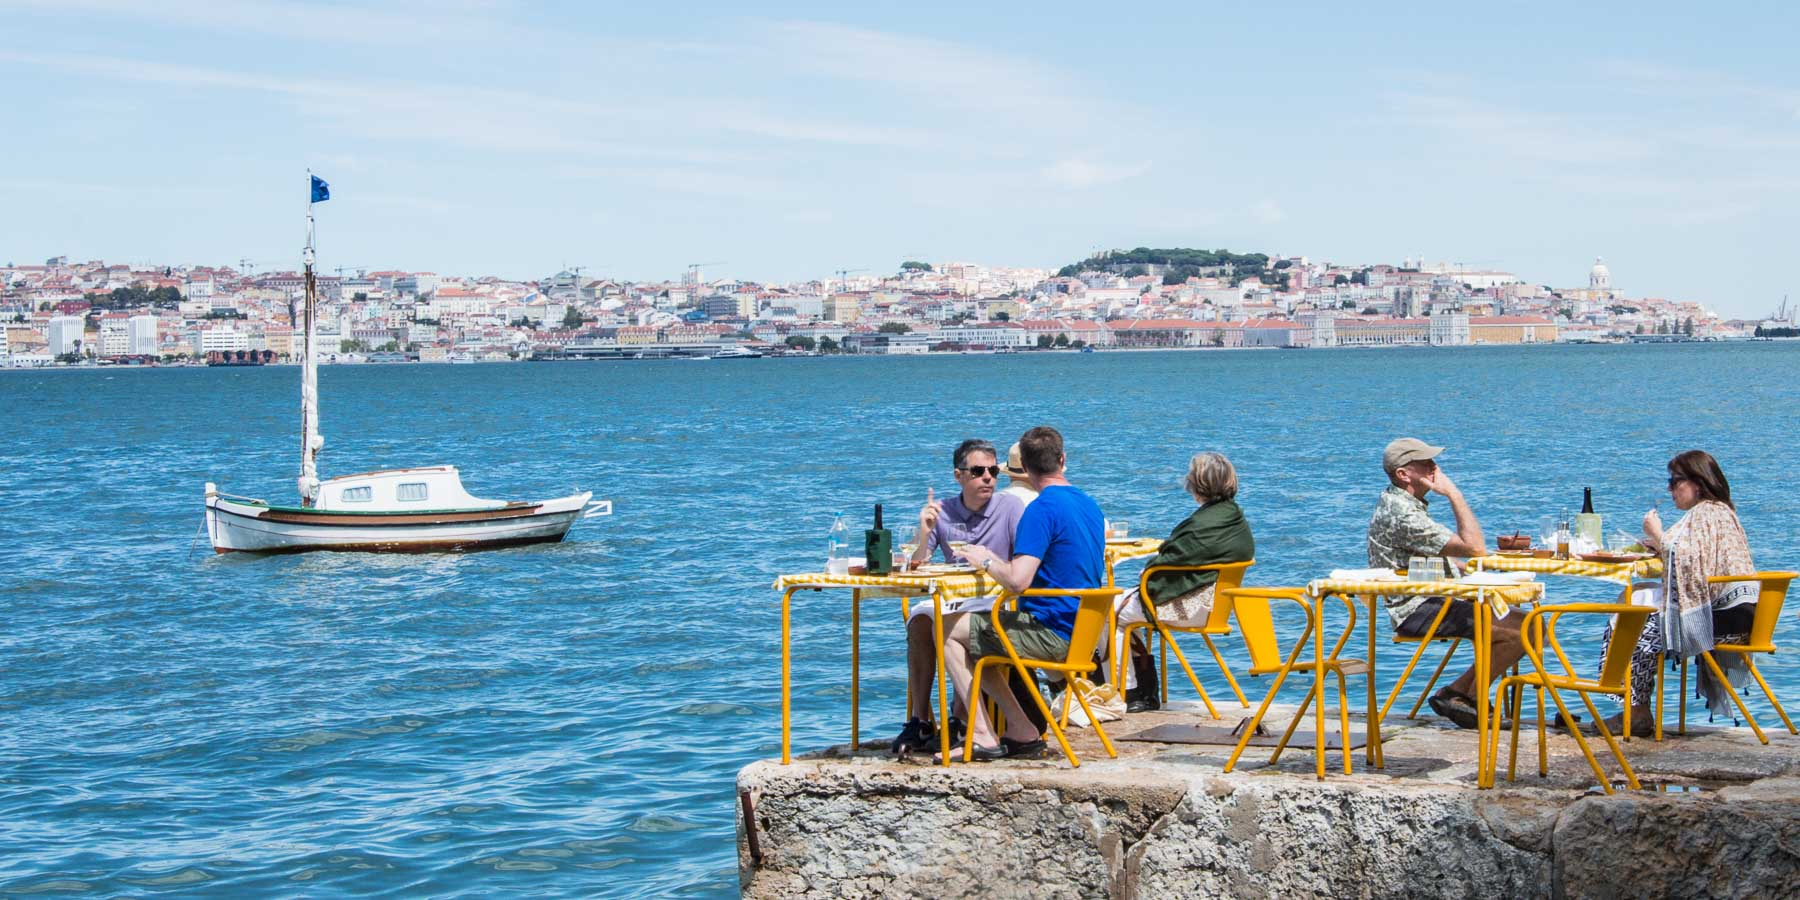 Three couples having lunch at the end of a dock on the Tagus River, Lisbon.